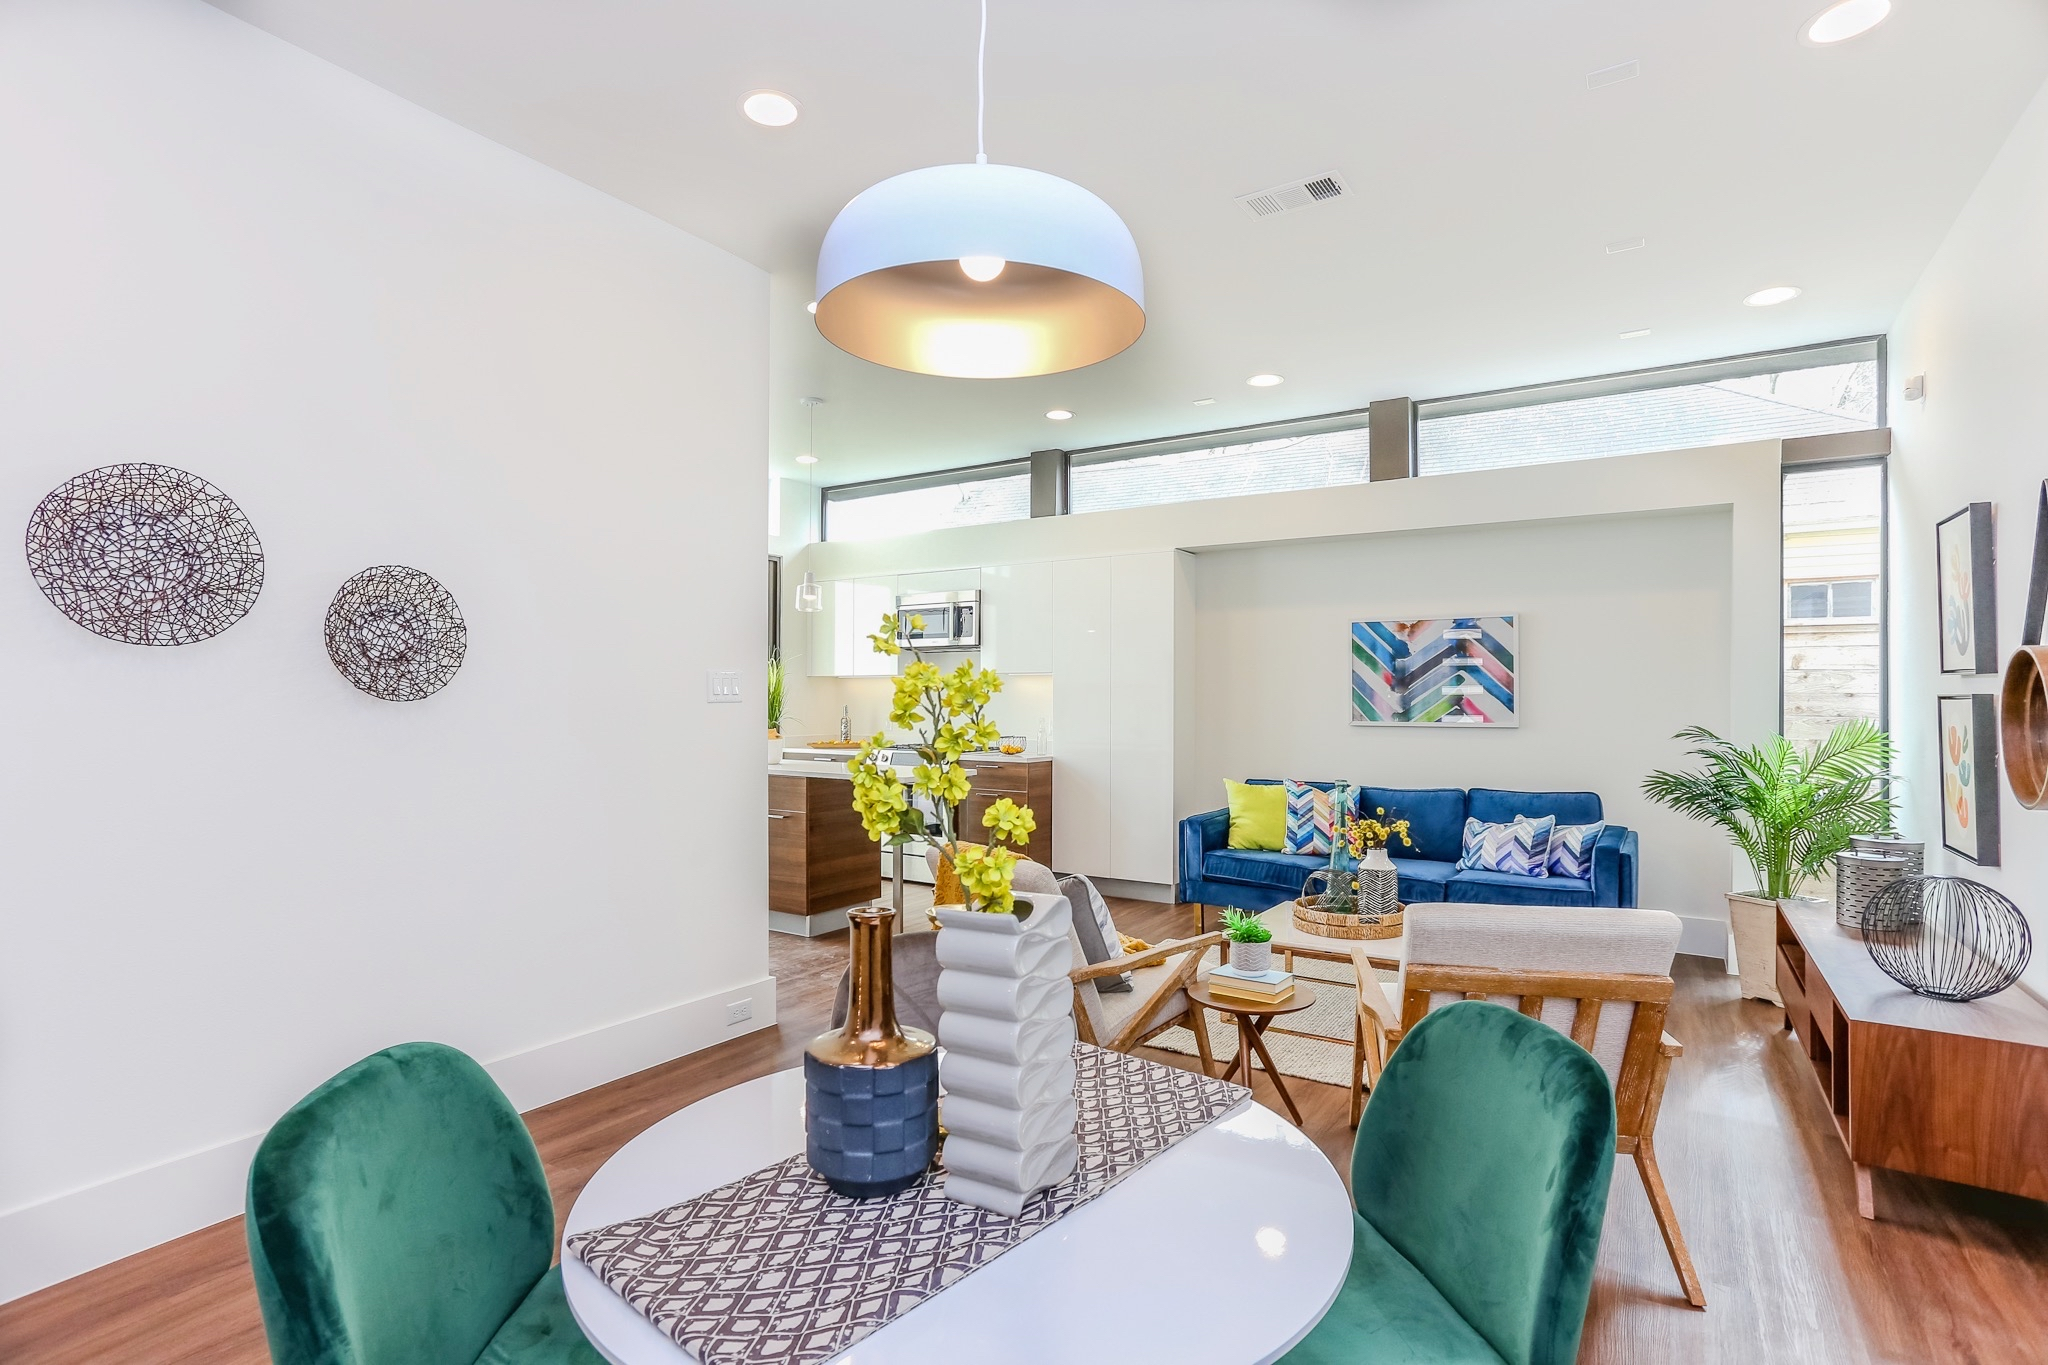 The distinctive dining area is anchored by a modern fixture and can accommodate the table of your choosing.